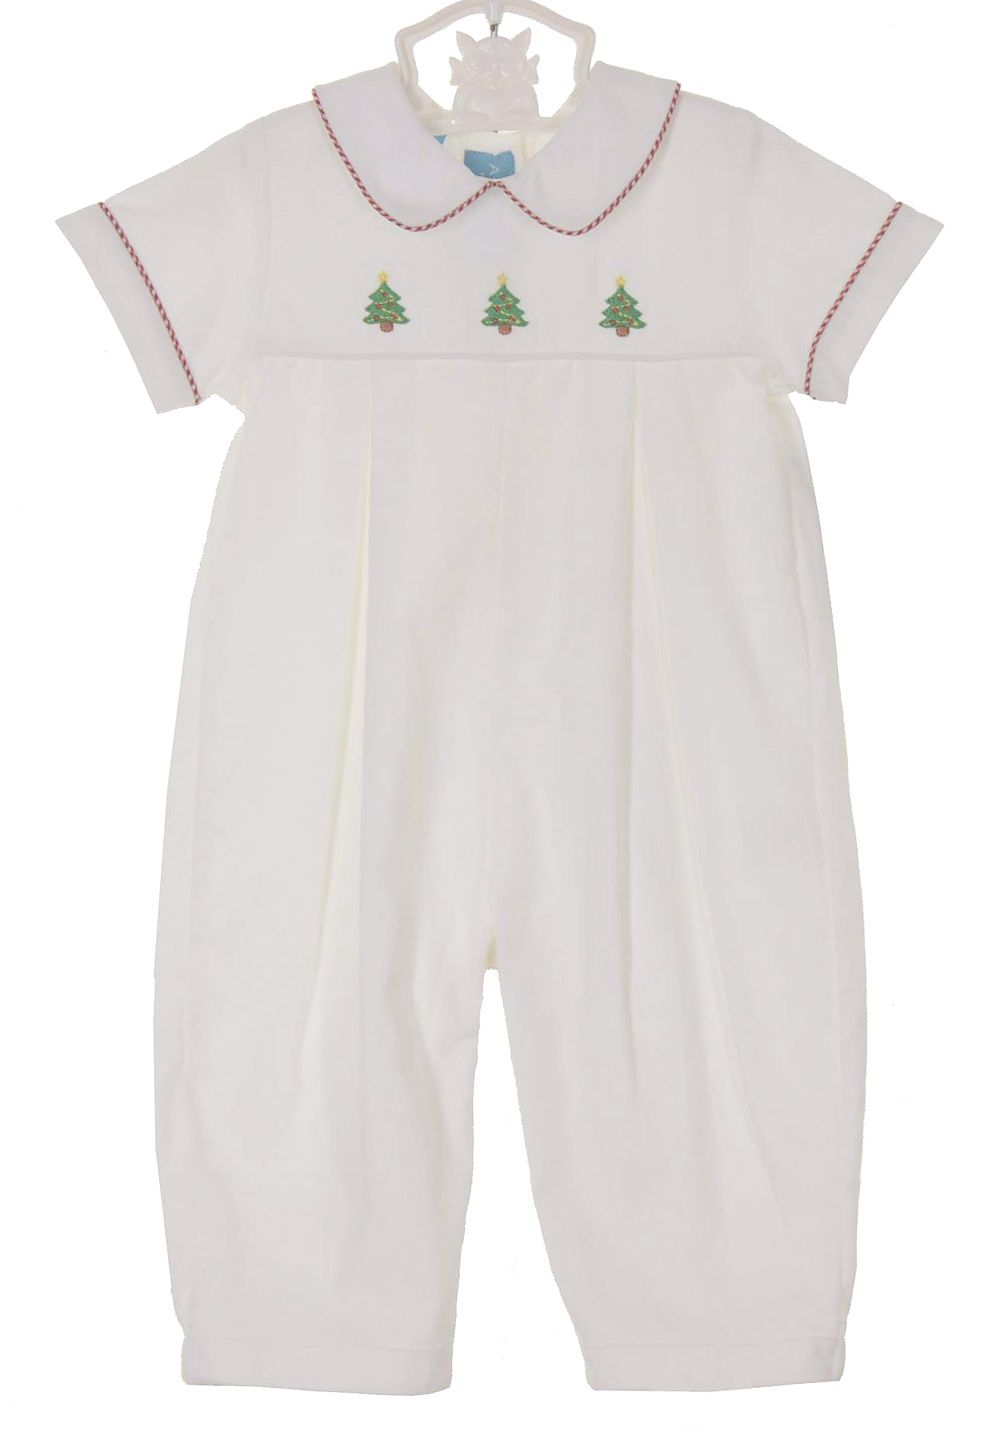 ae7a35be5 NEW Anavini White Soft Cotton Corduroy Romper with Embroidered ...